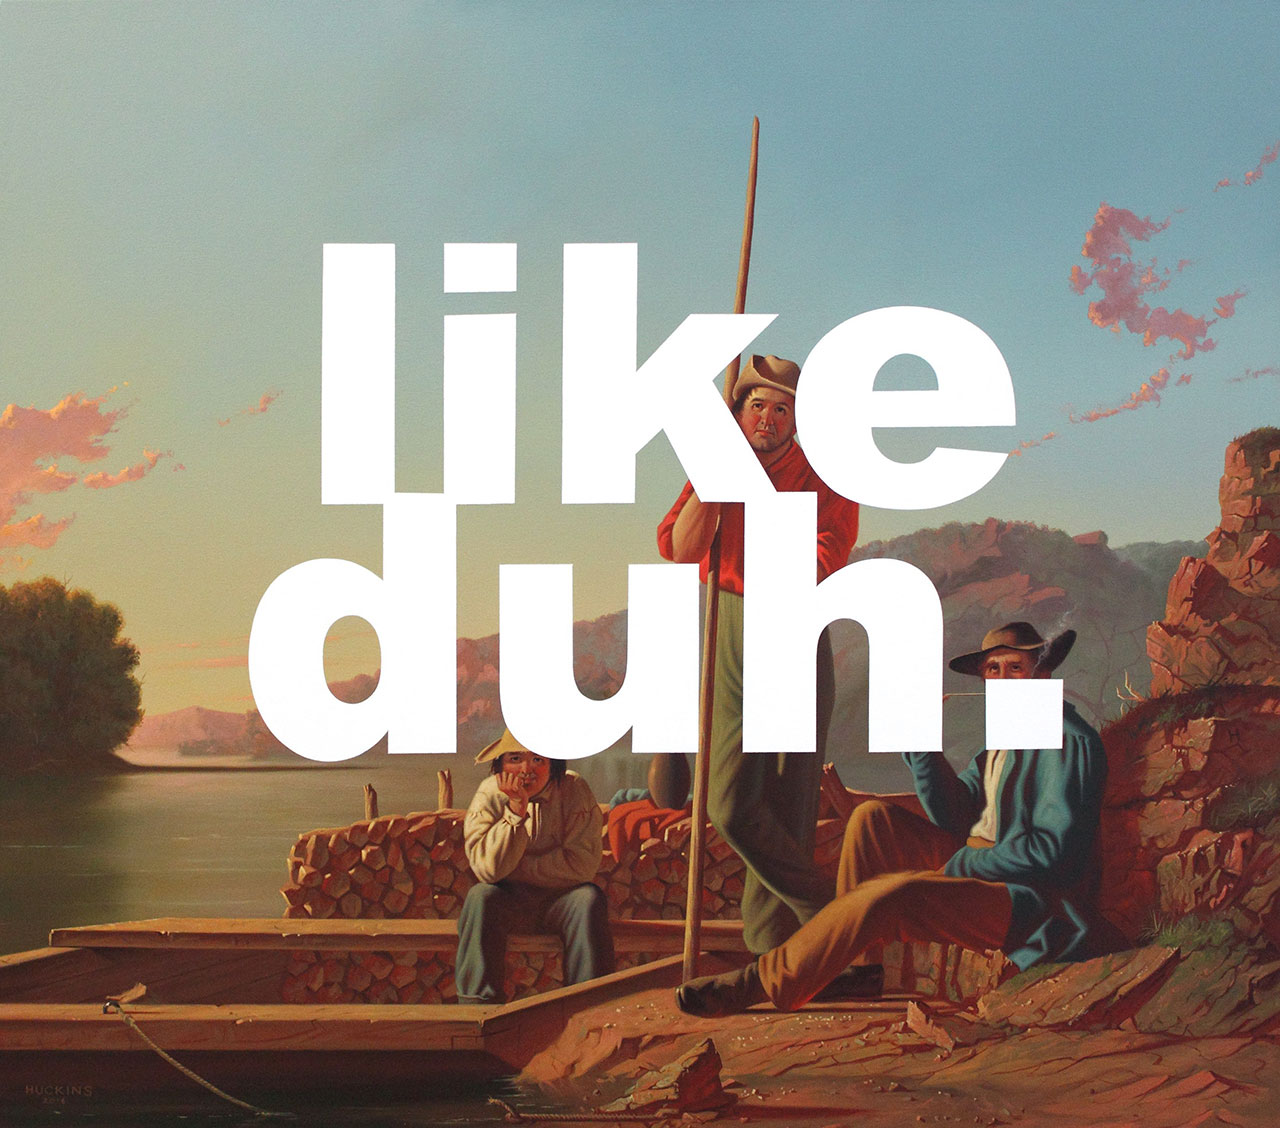 Shawn Huckins, The Wood-Boat: Like Duh. ,acrylic on canvas, 32 x 36 in (81 x 91 cm), 2016. Private collection.